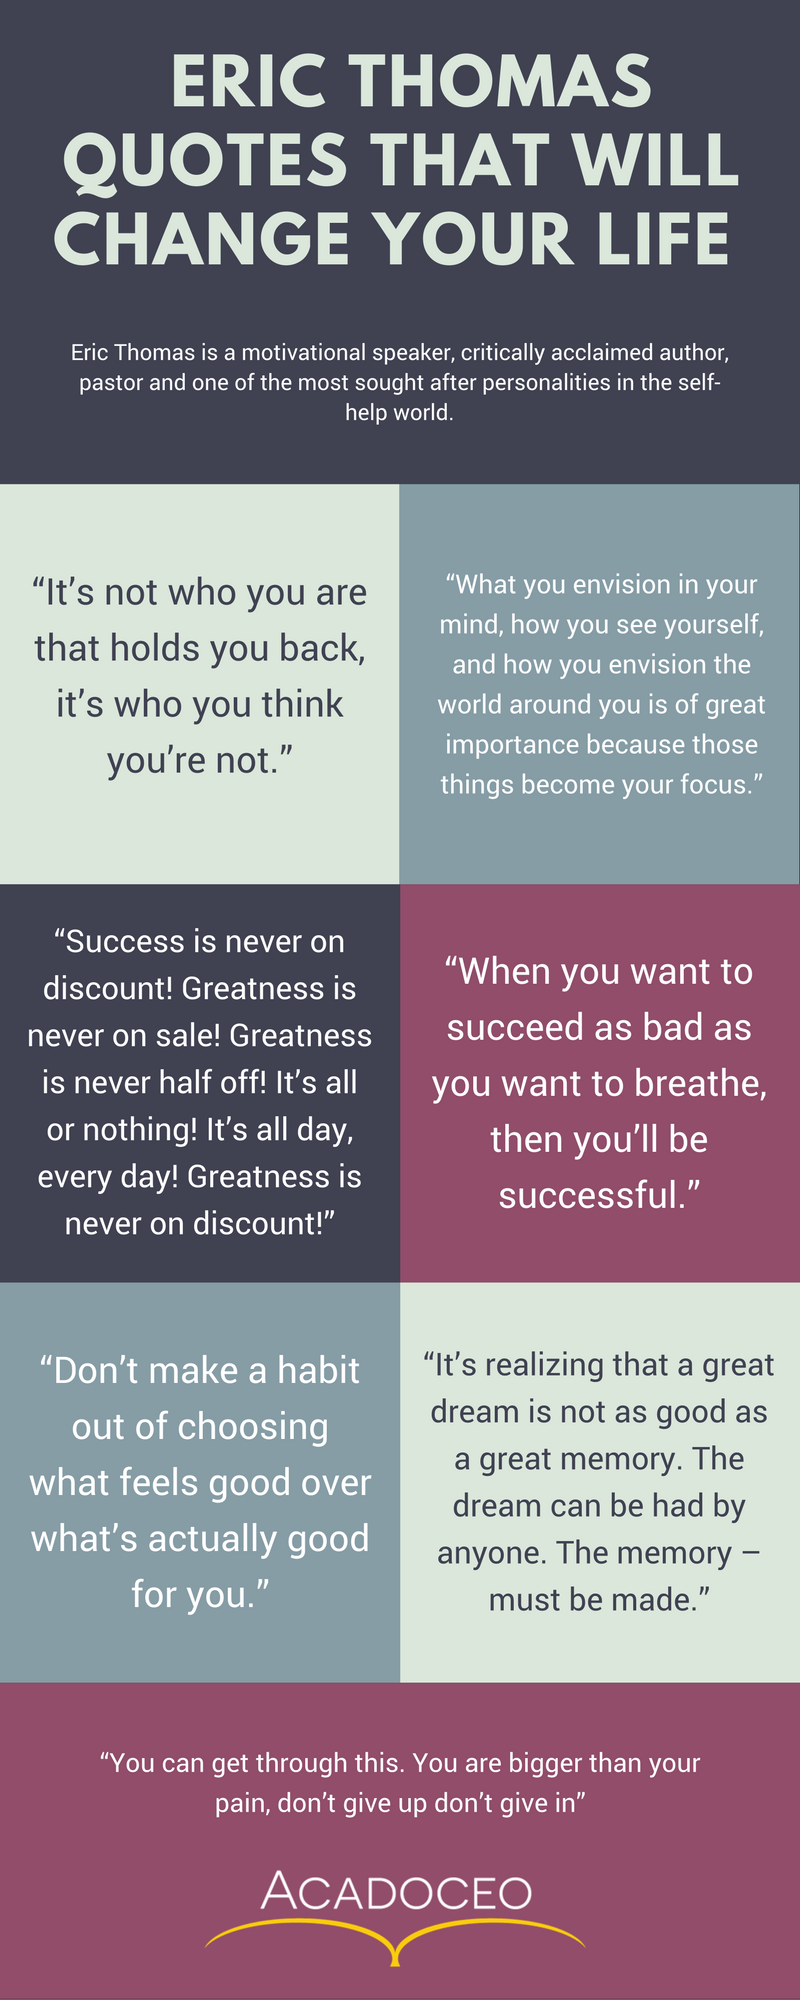 34 Eric Thomas Quotes That Will Change Your Life | Sayings & Quotes ...